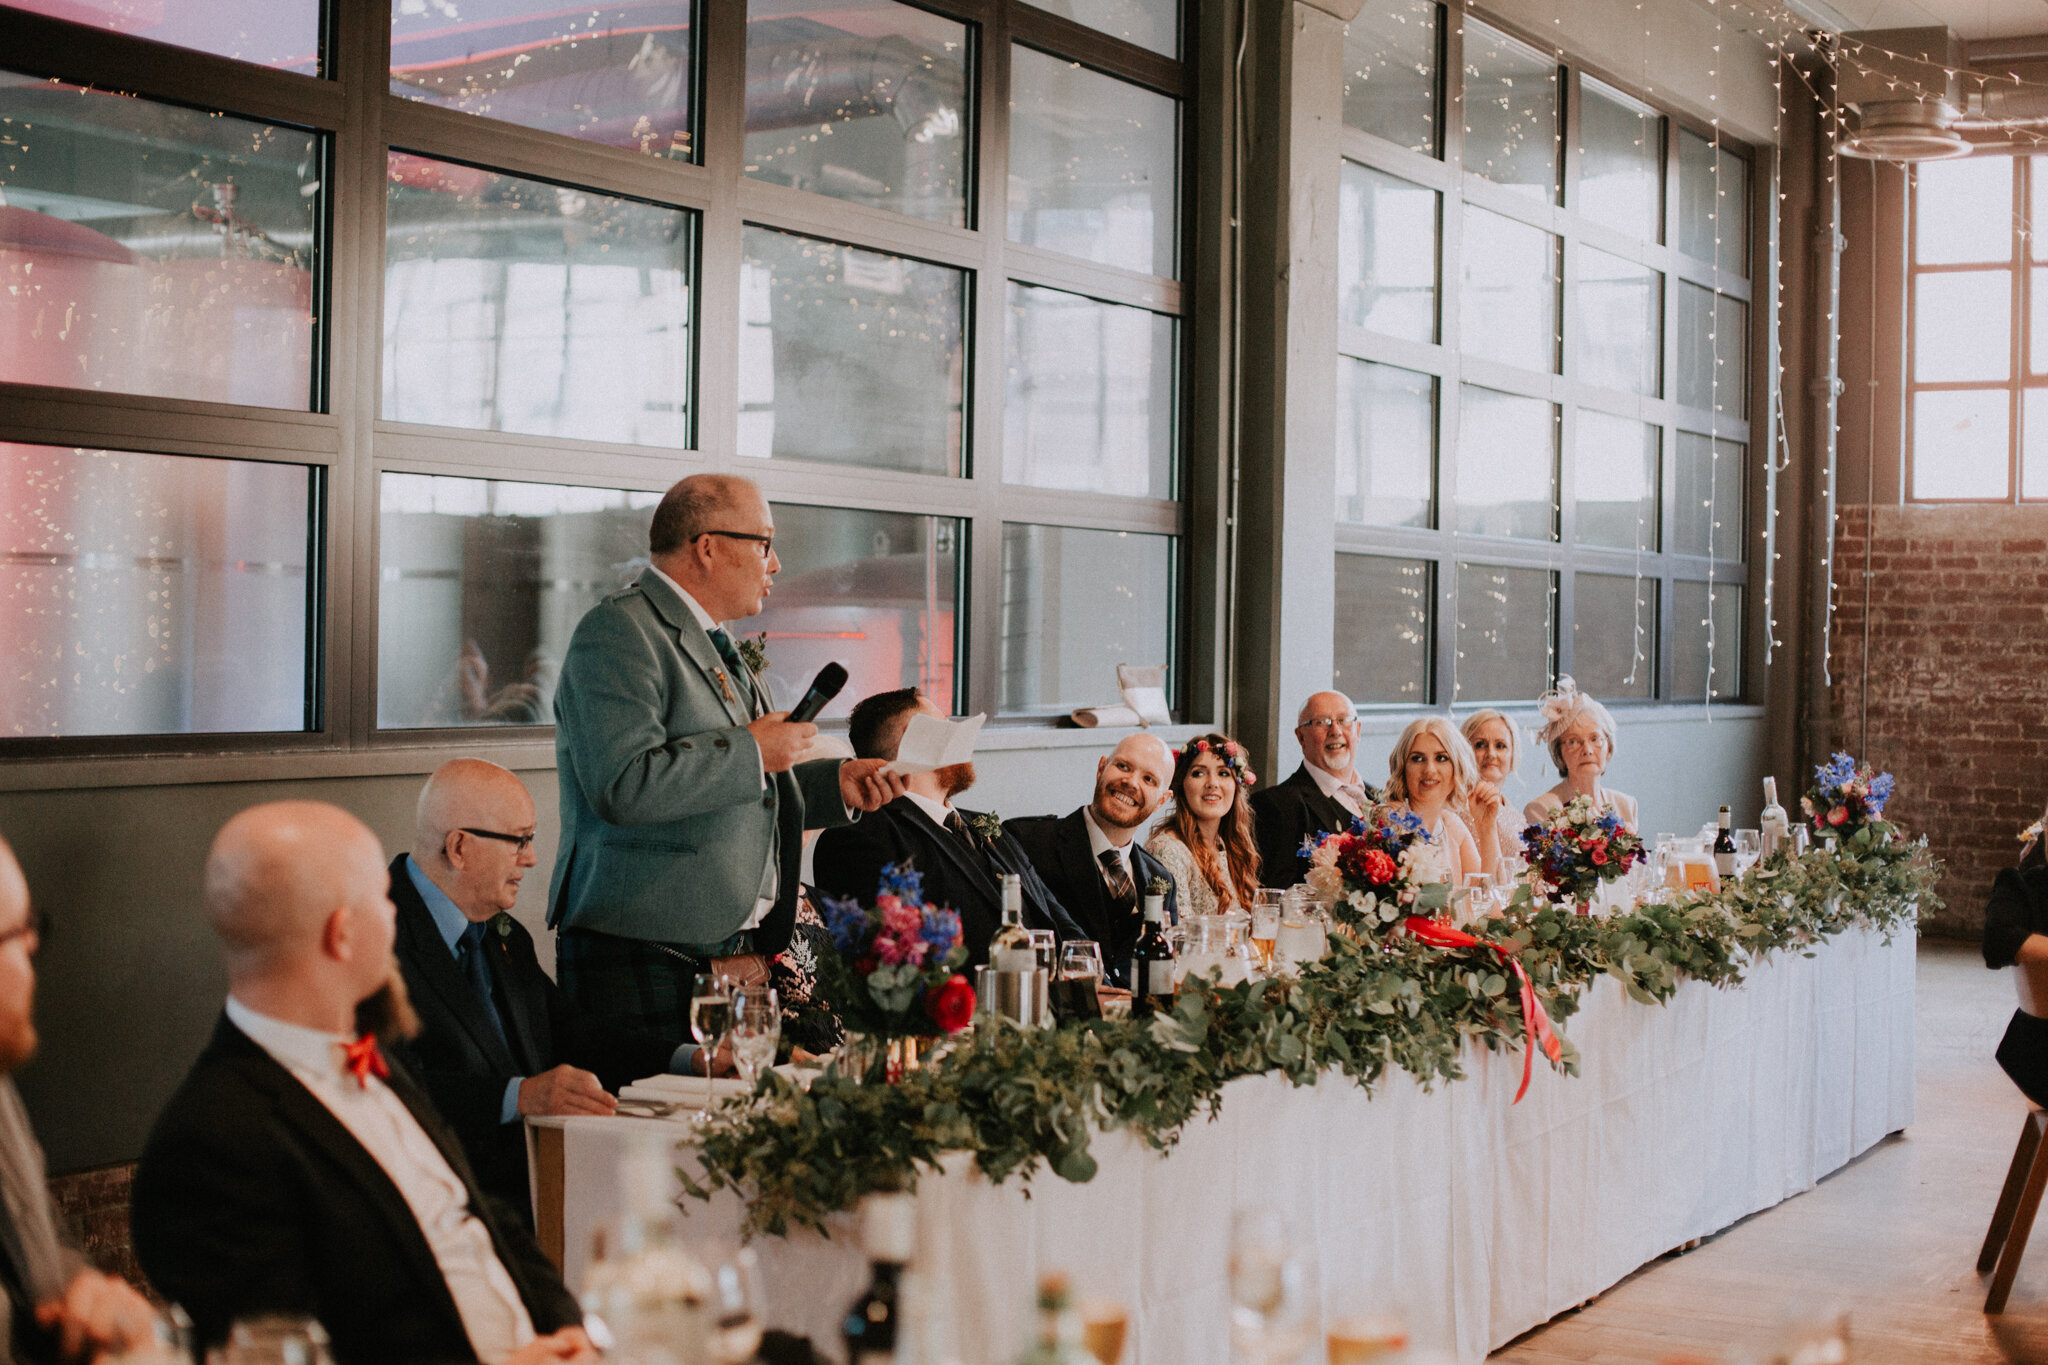 The father of the bride is giving a speech at West on the Green alternative wedding venue